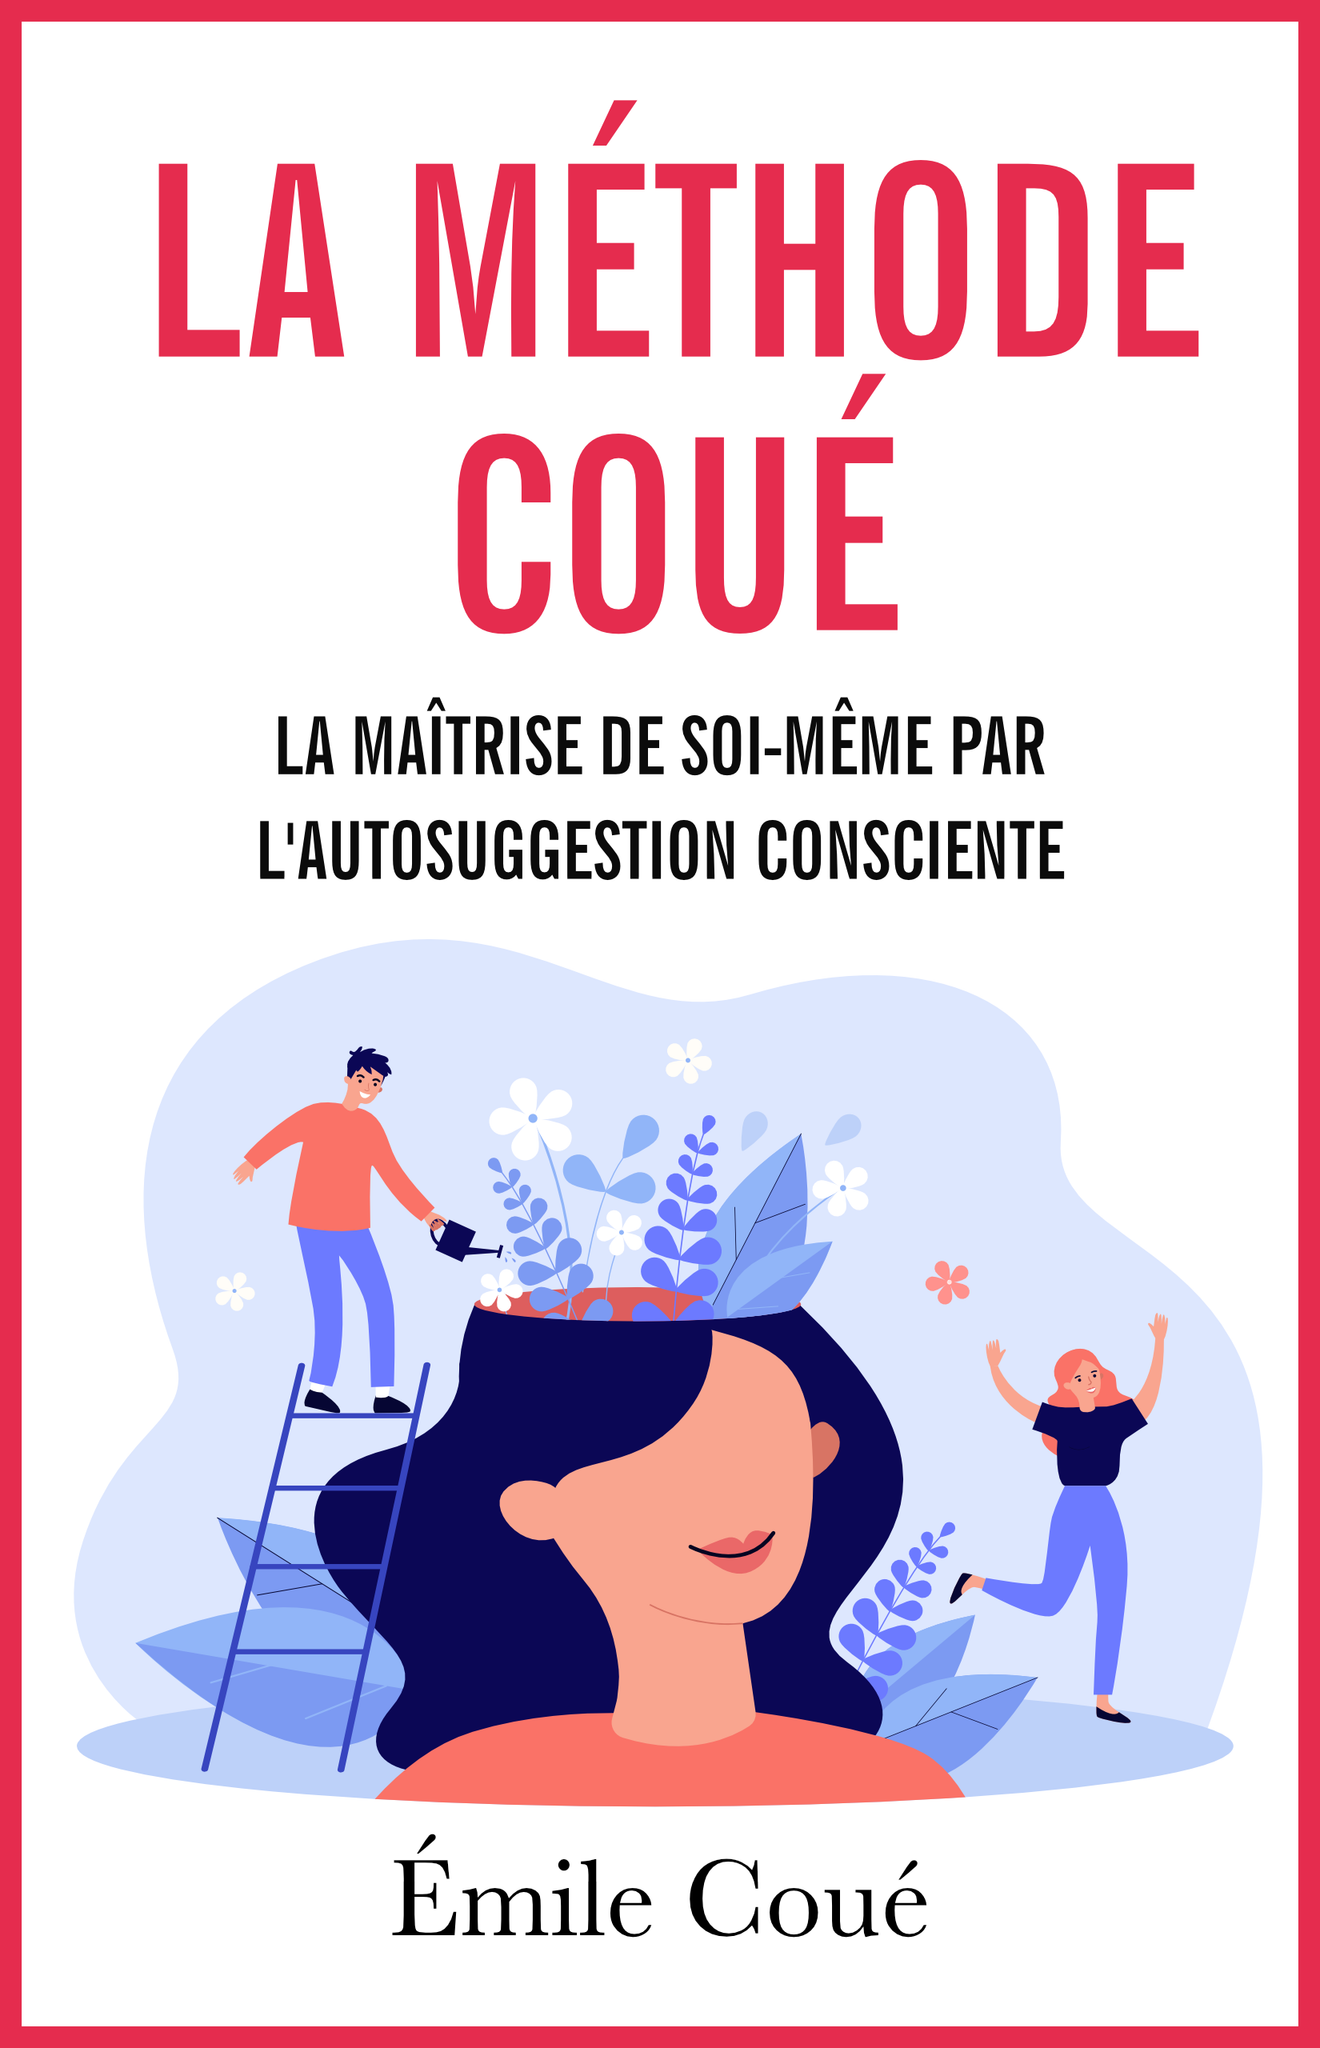 La méthode Coué - ebook